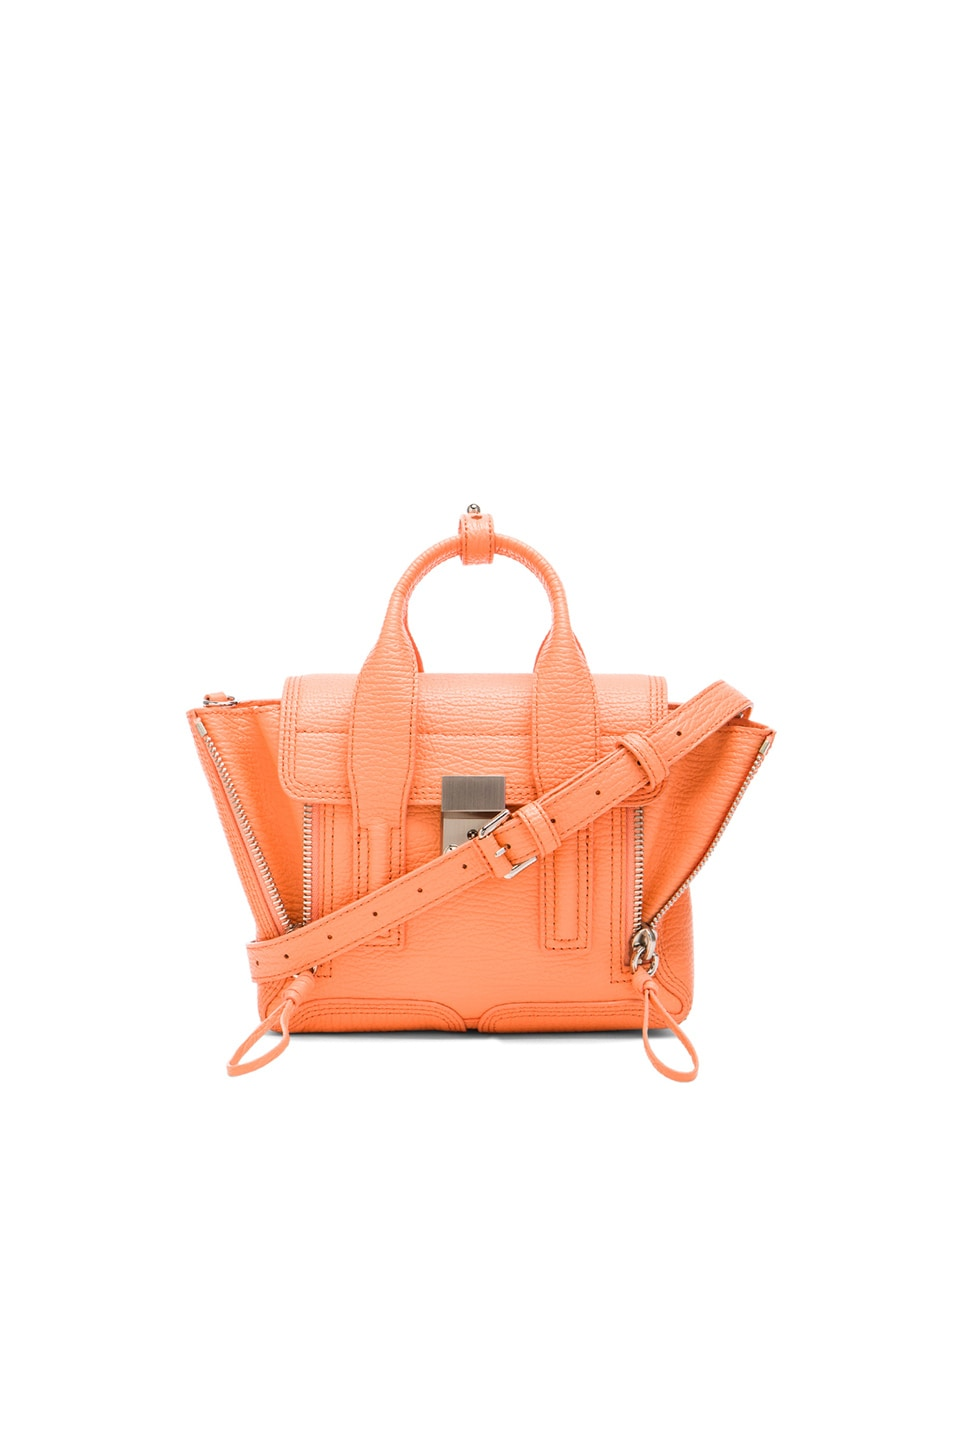 Image 1 of 3.1 phillip lim Mini Pashli Satchel in Melon